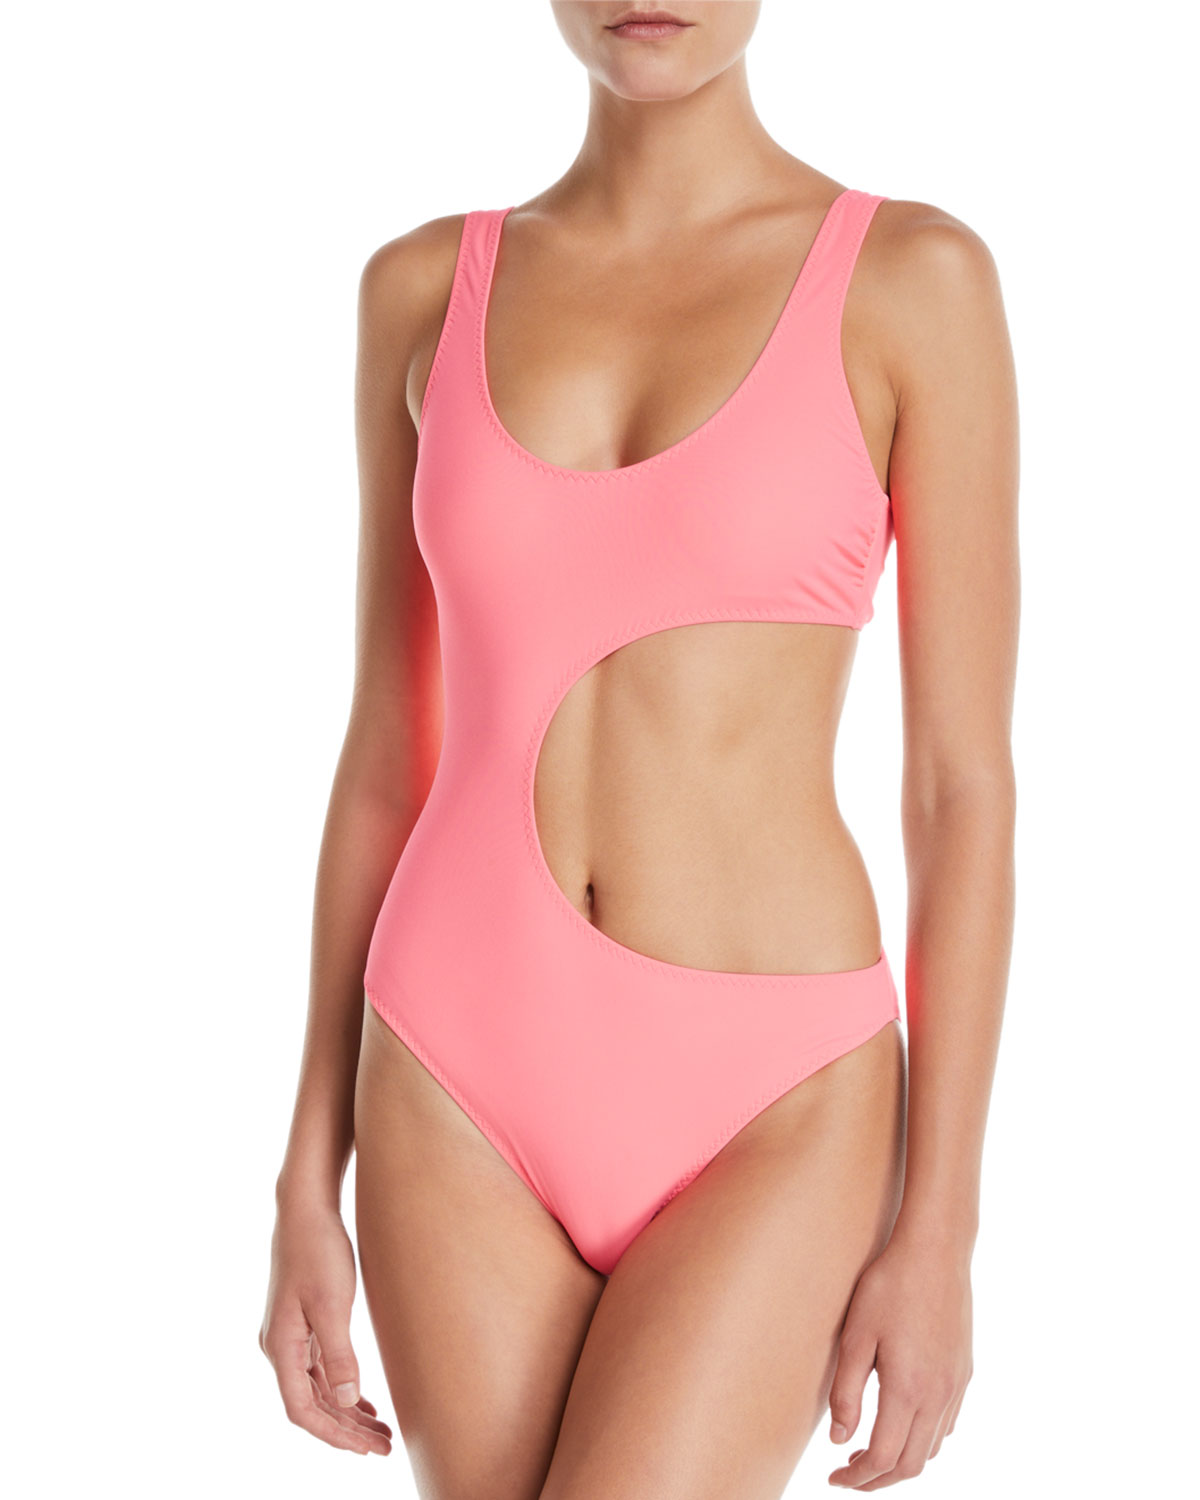 90s Fluo Scoop-Neck Cutout One-Piece Swimsuit